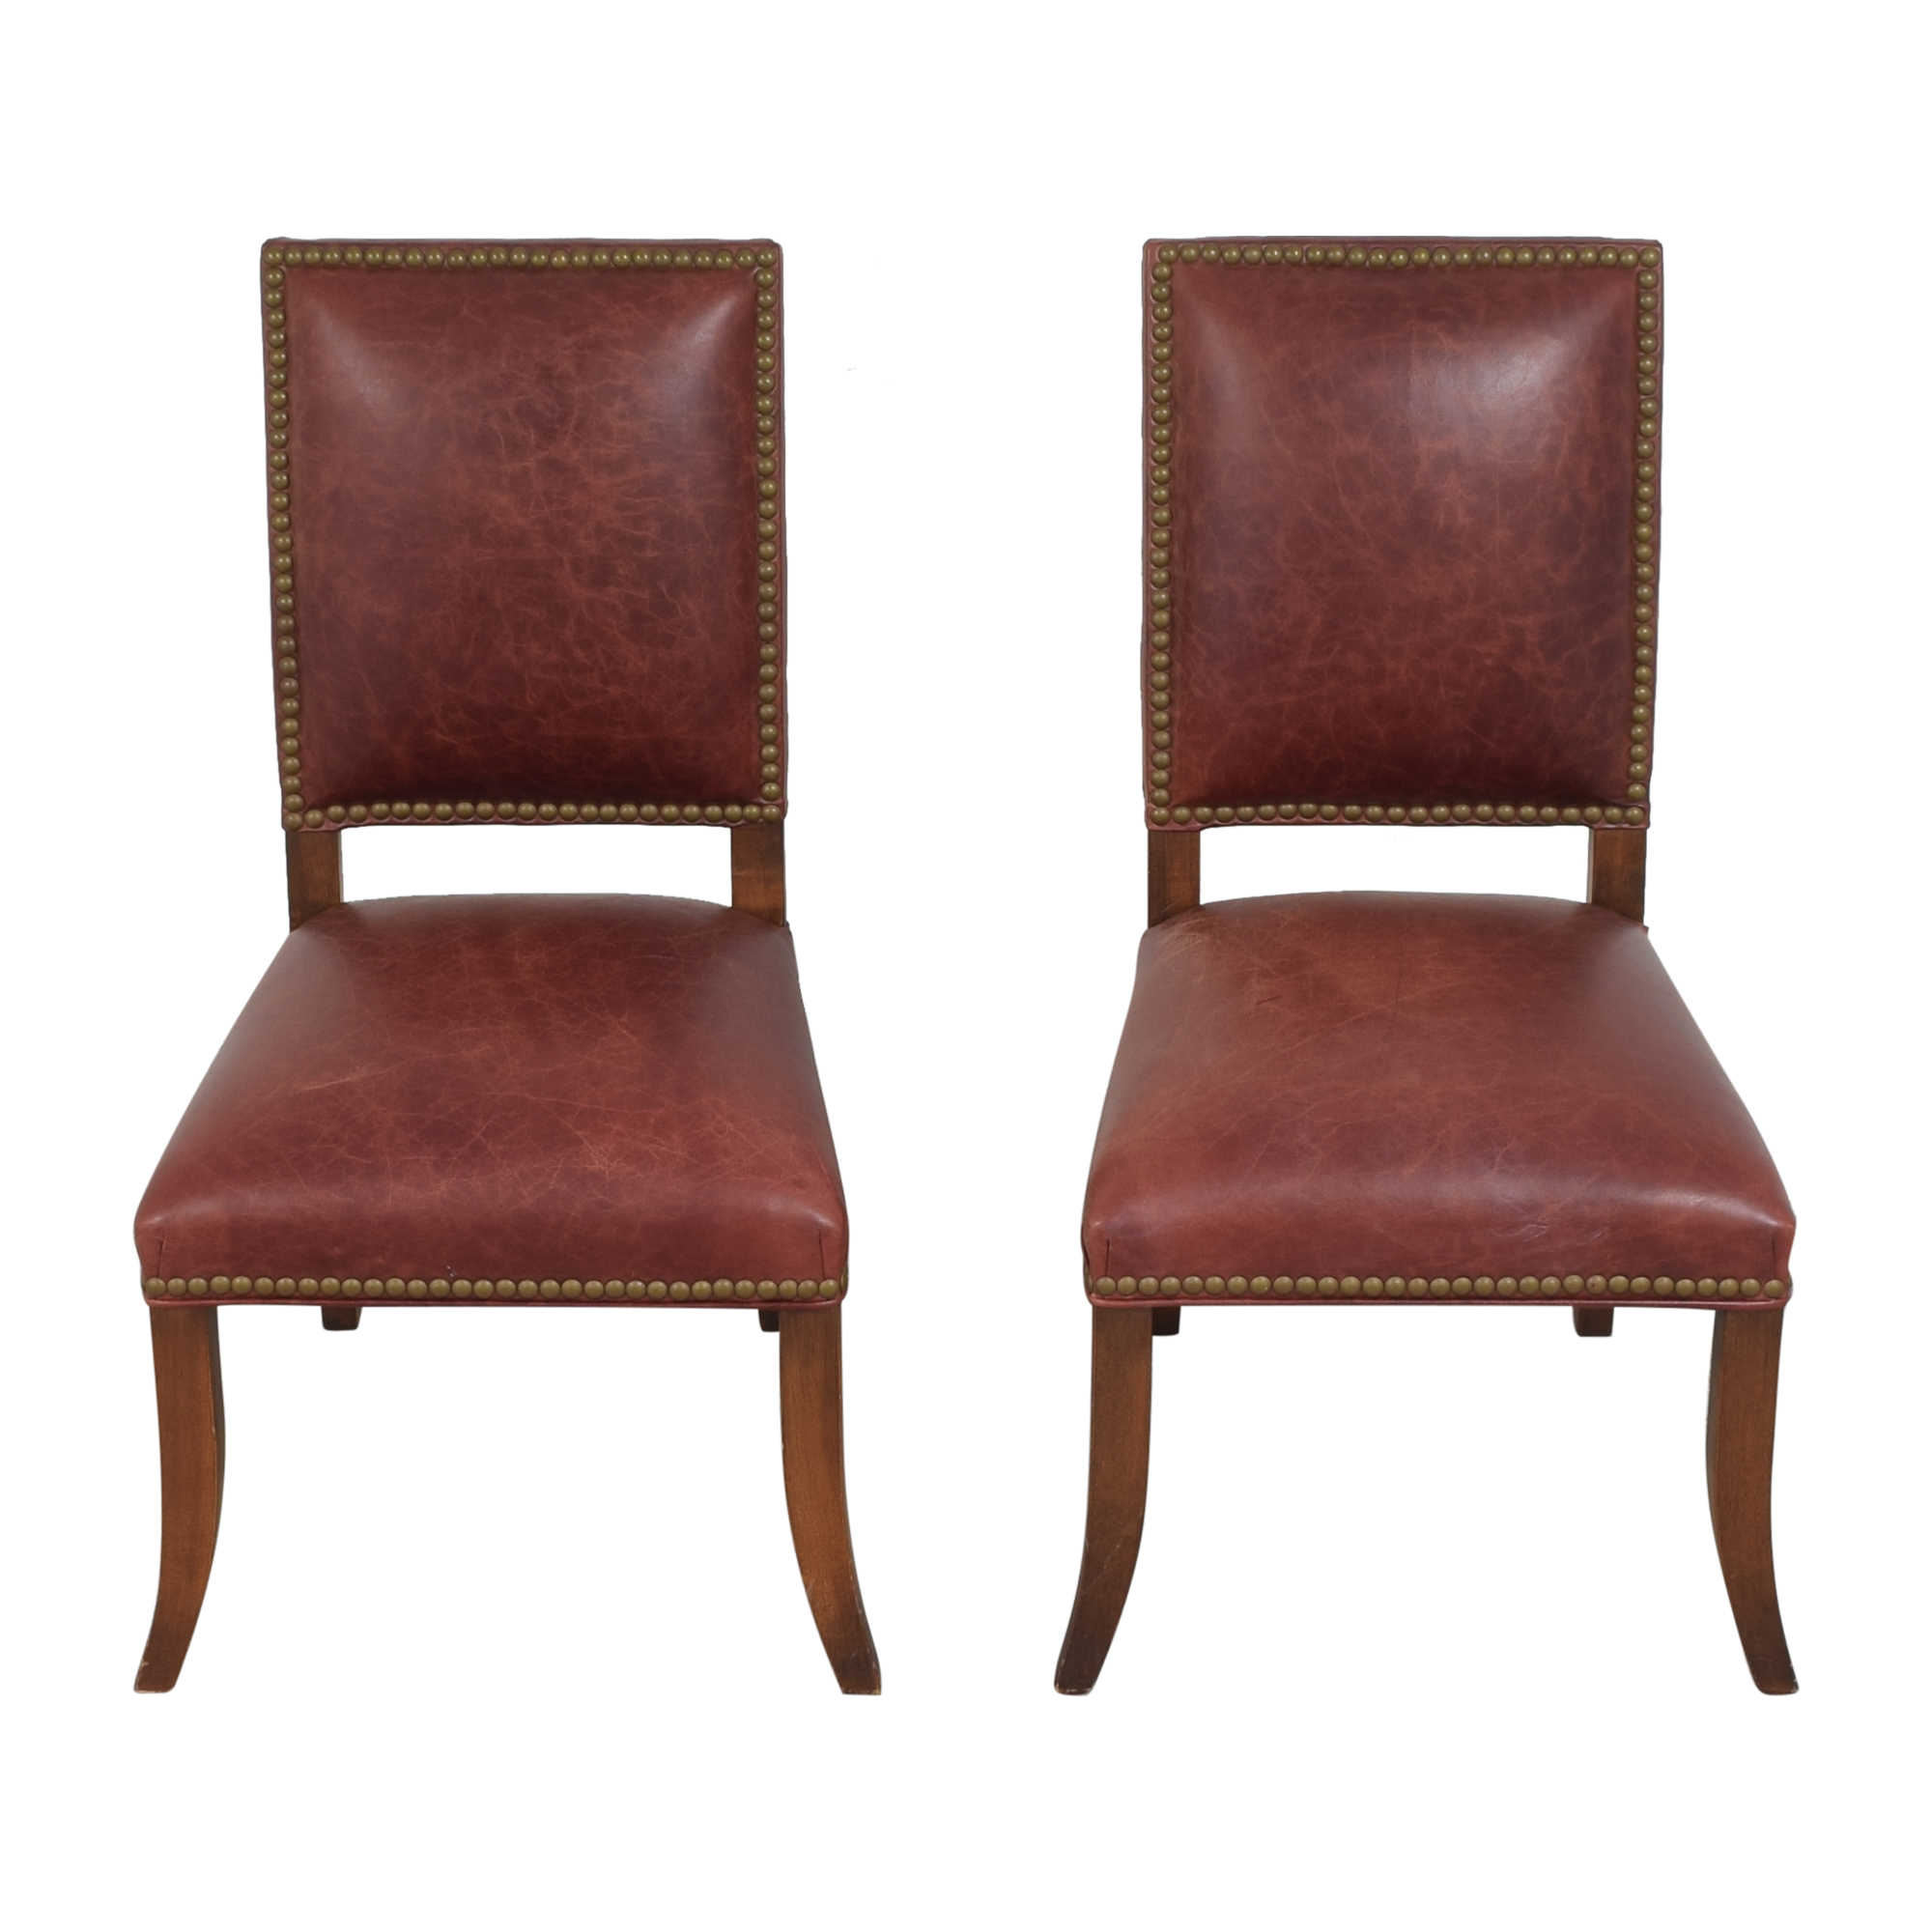 Ethan Allen Ethan Allen Nailhead Dining Side Chairs pa